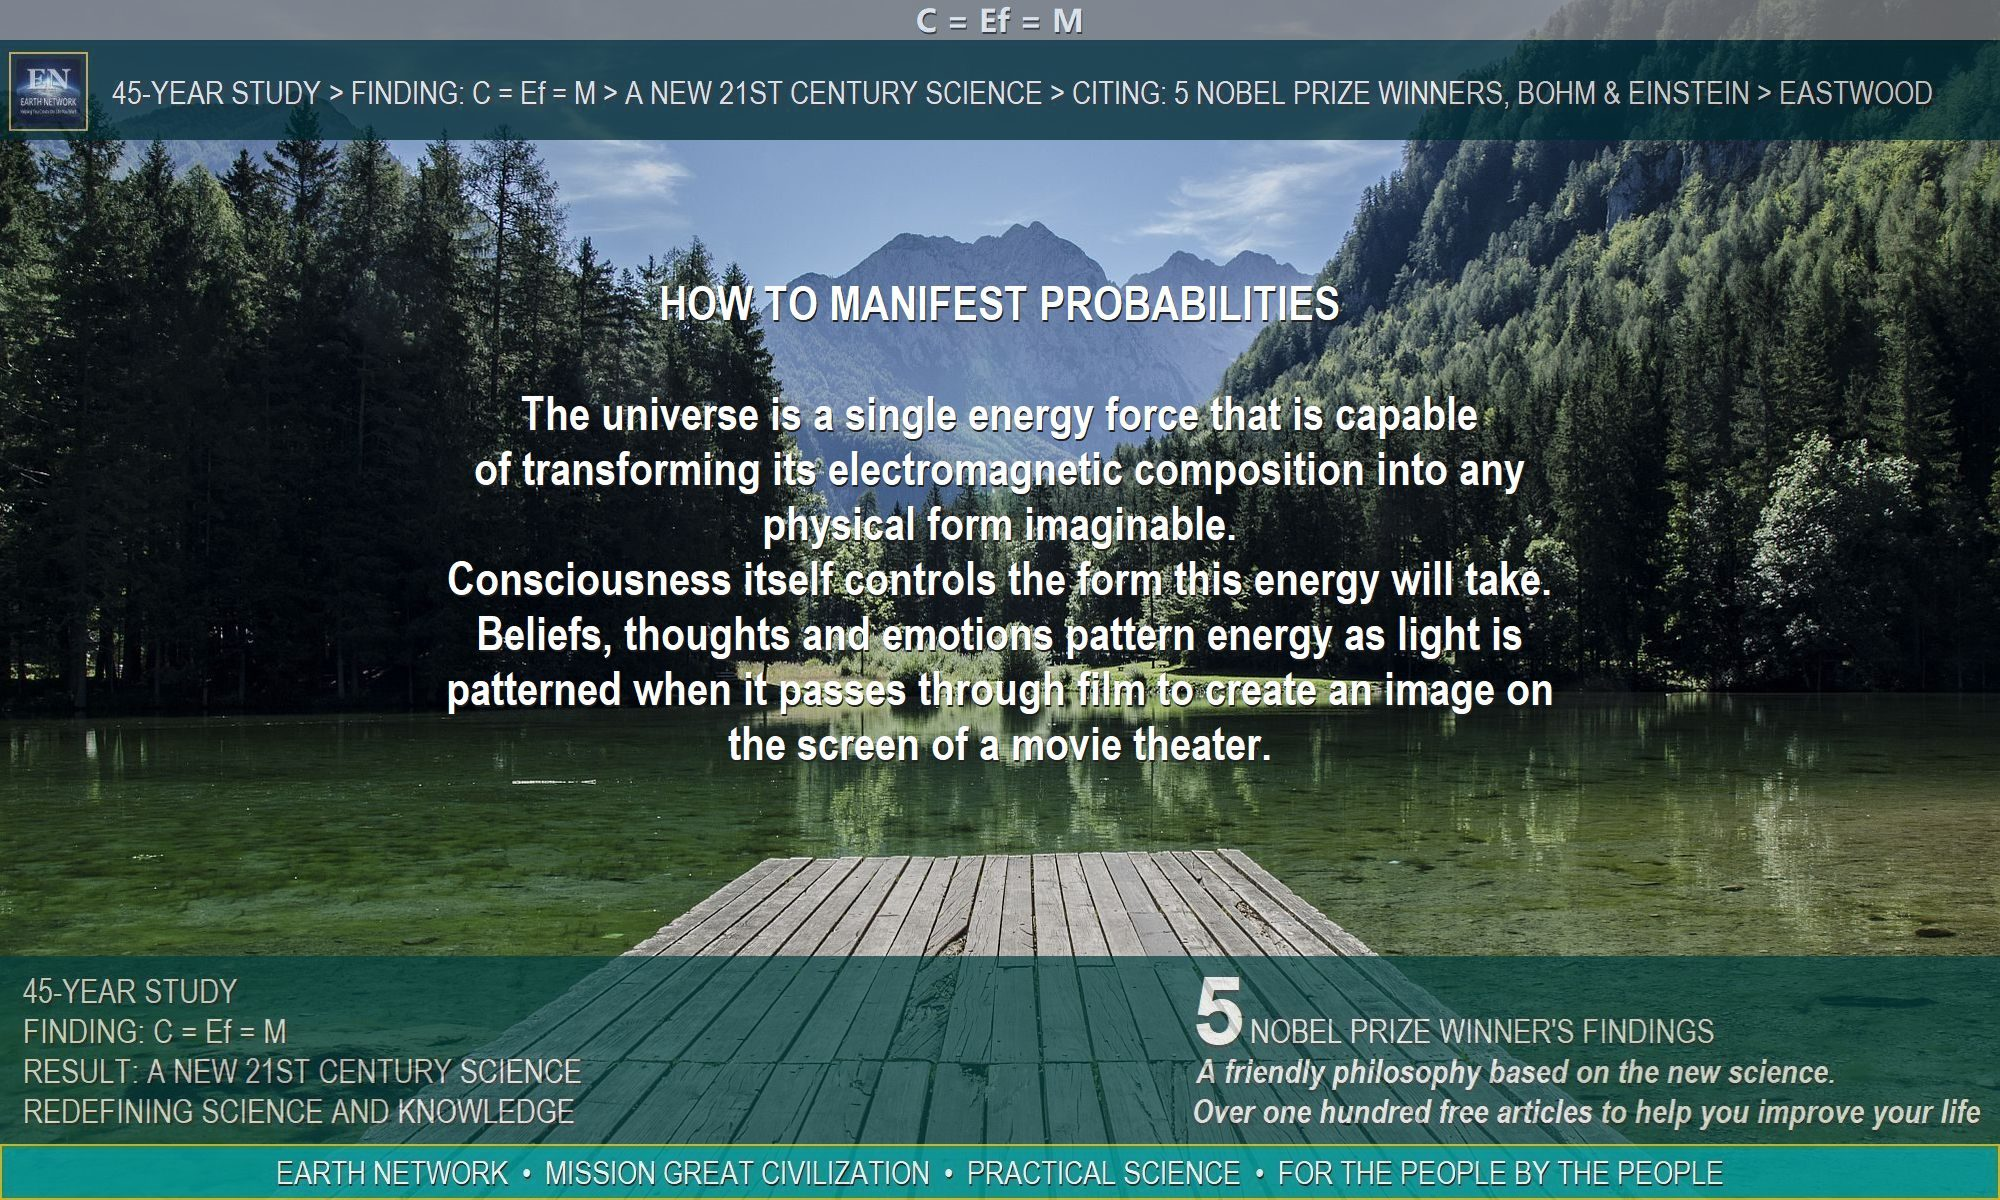 How Can I Use Metaphysics Conscious Co-Creation Manifesting to Change My Life Situation? What is metaphysics?